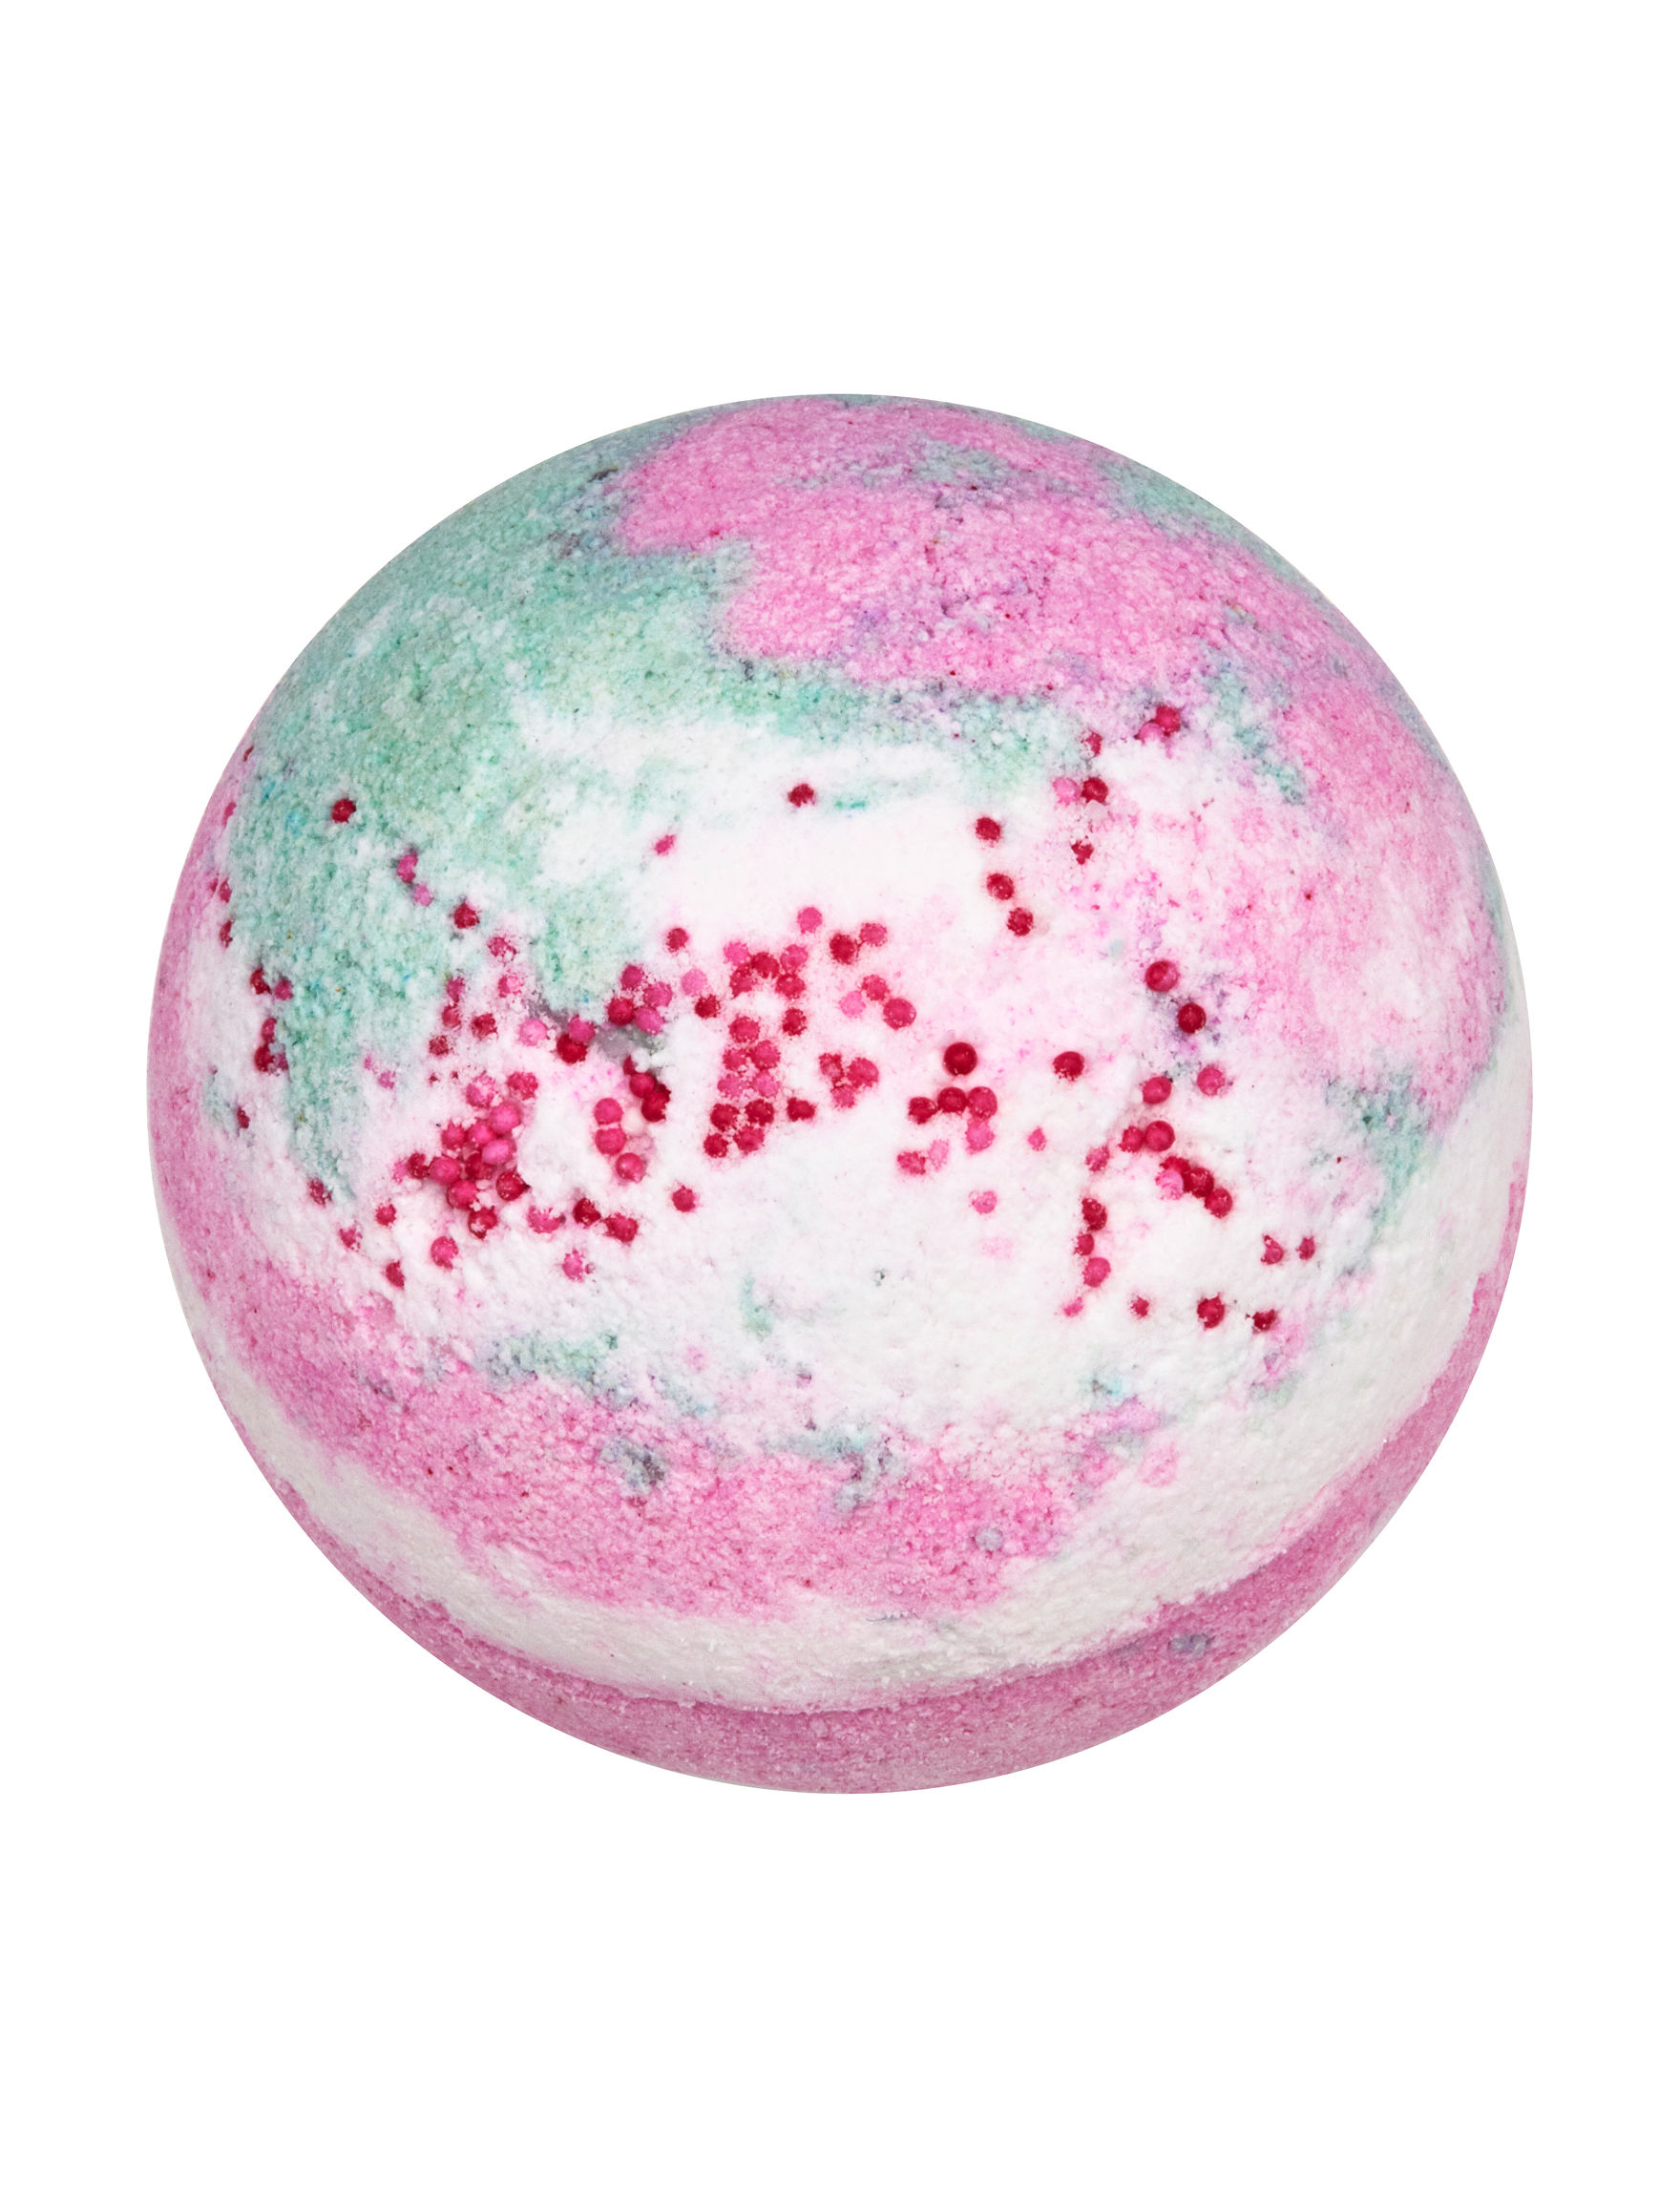 Fizz & Bubbles  Bath Bombs, Salts & Oils